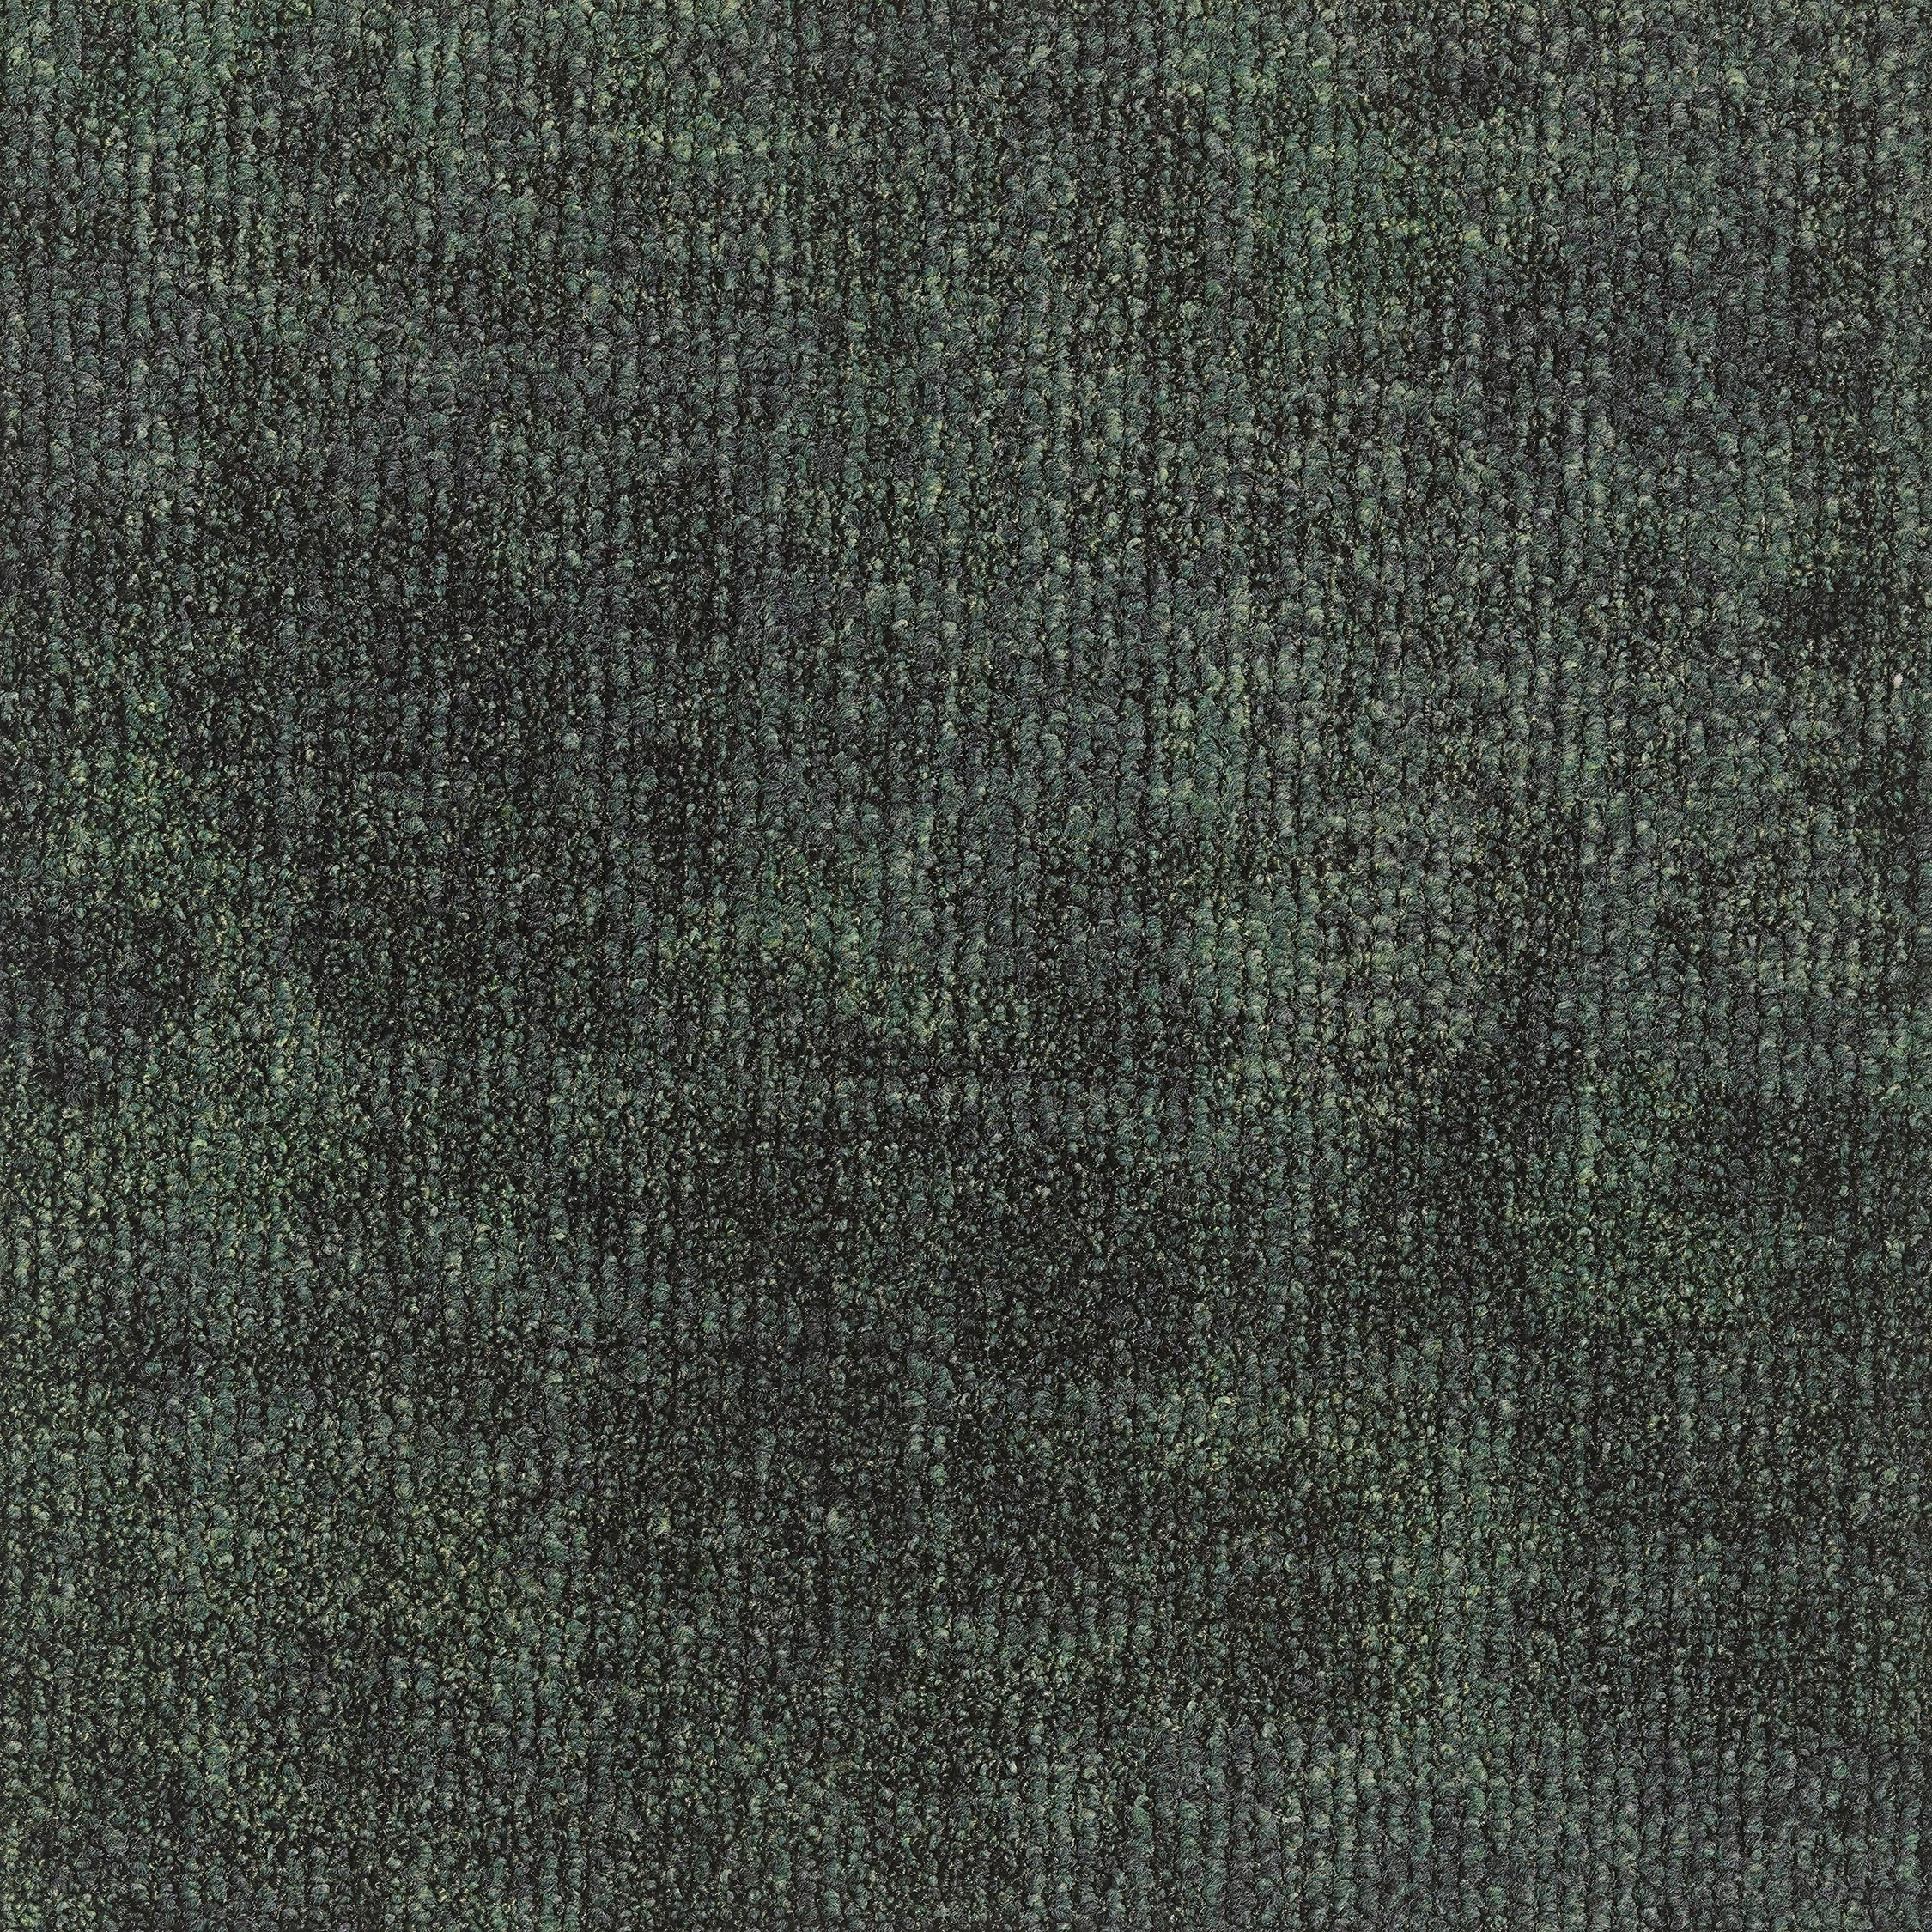 ReForm Transition Leaf dark green 5500